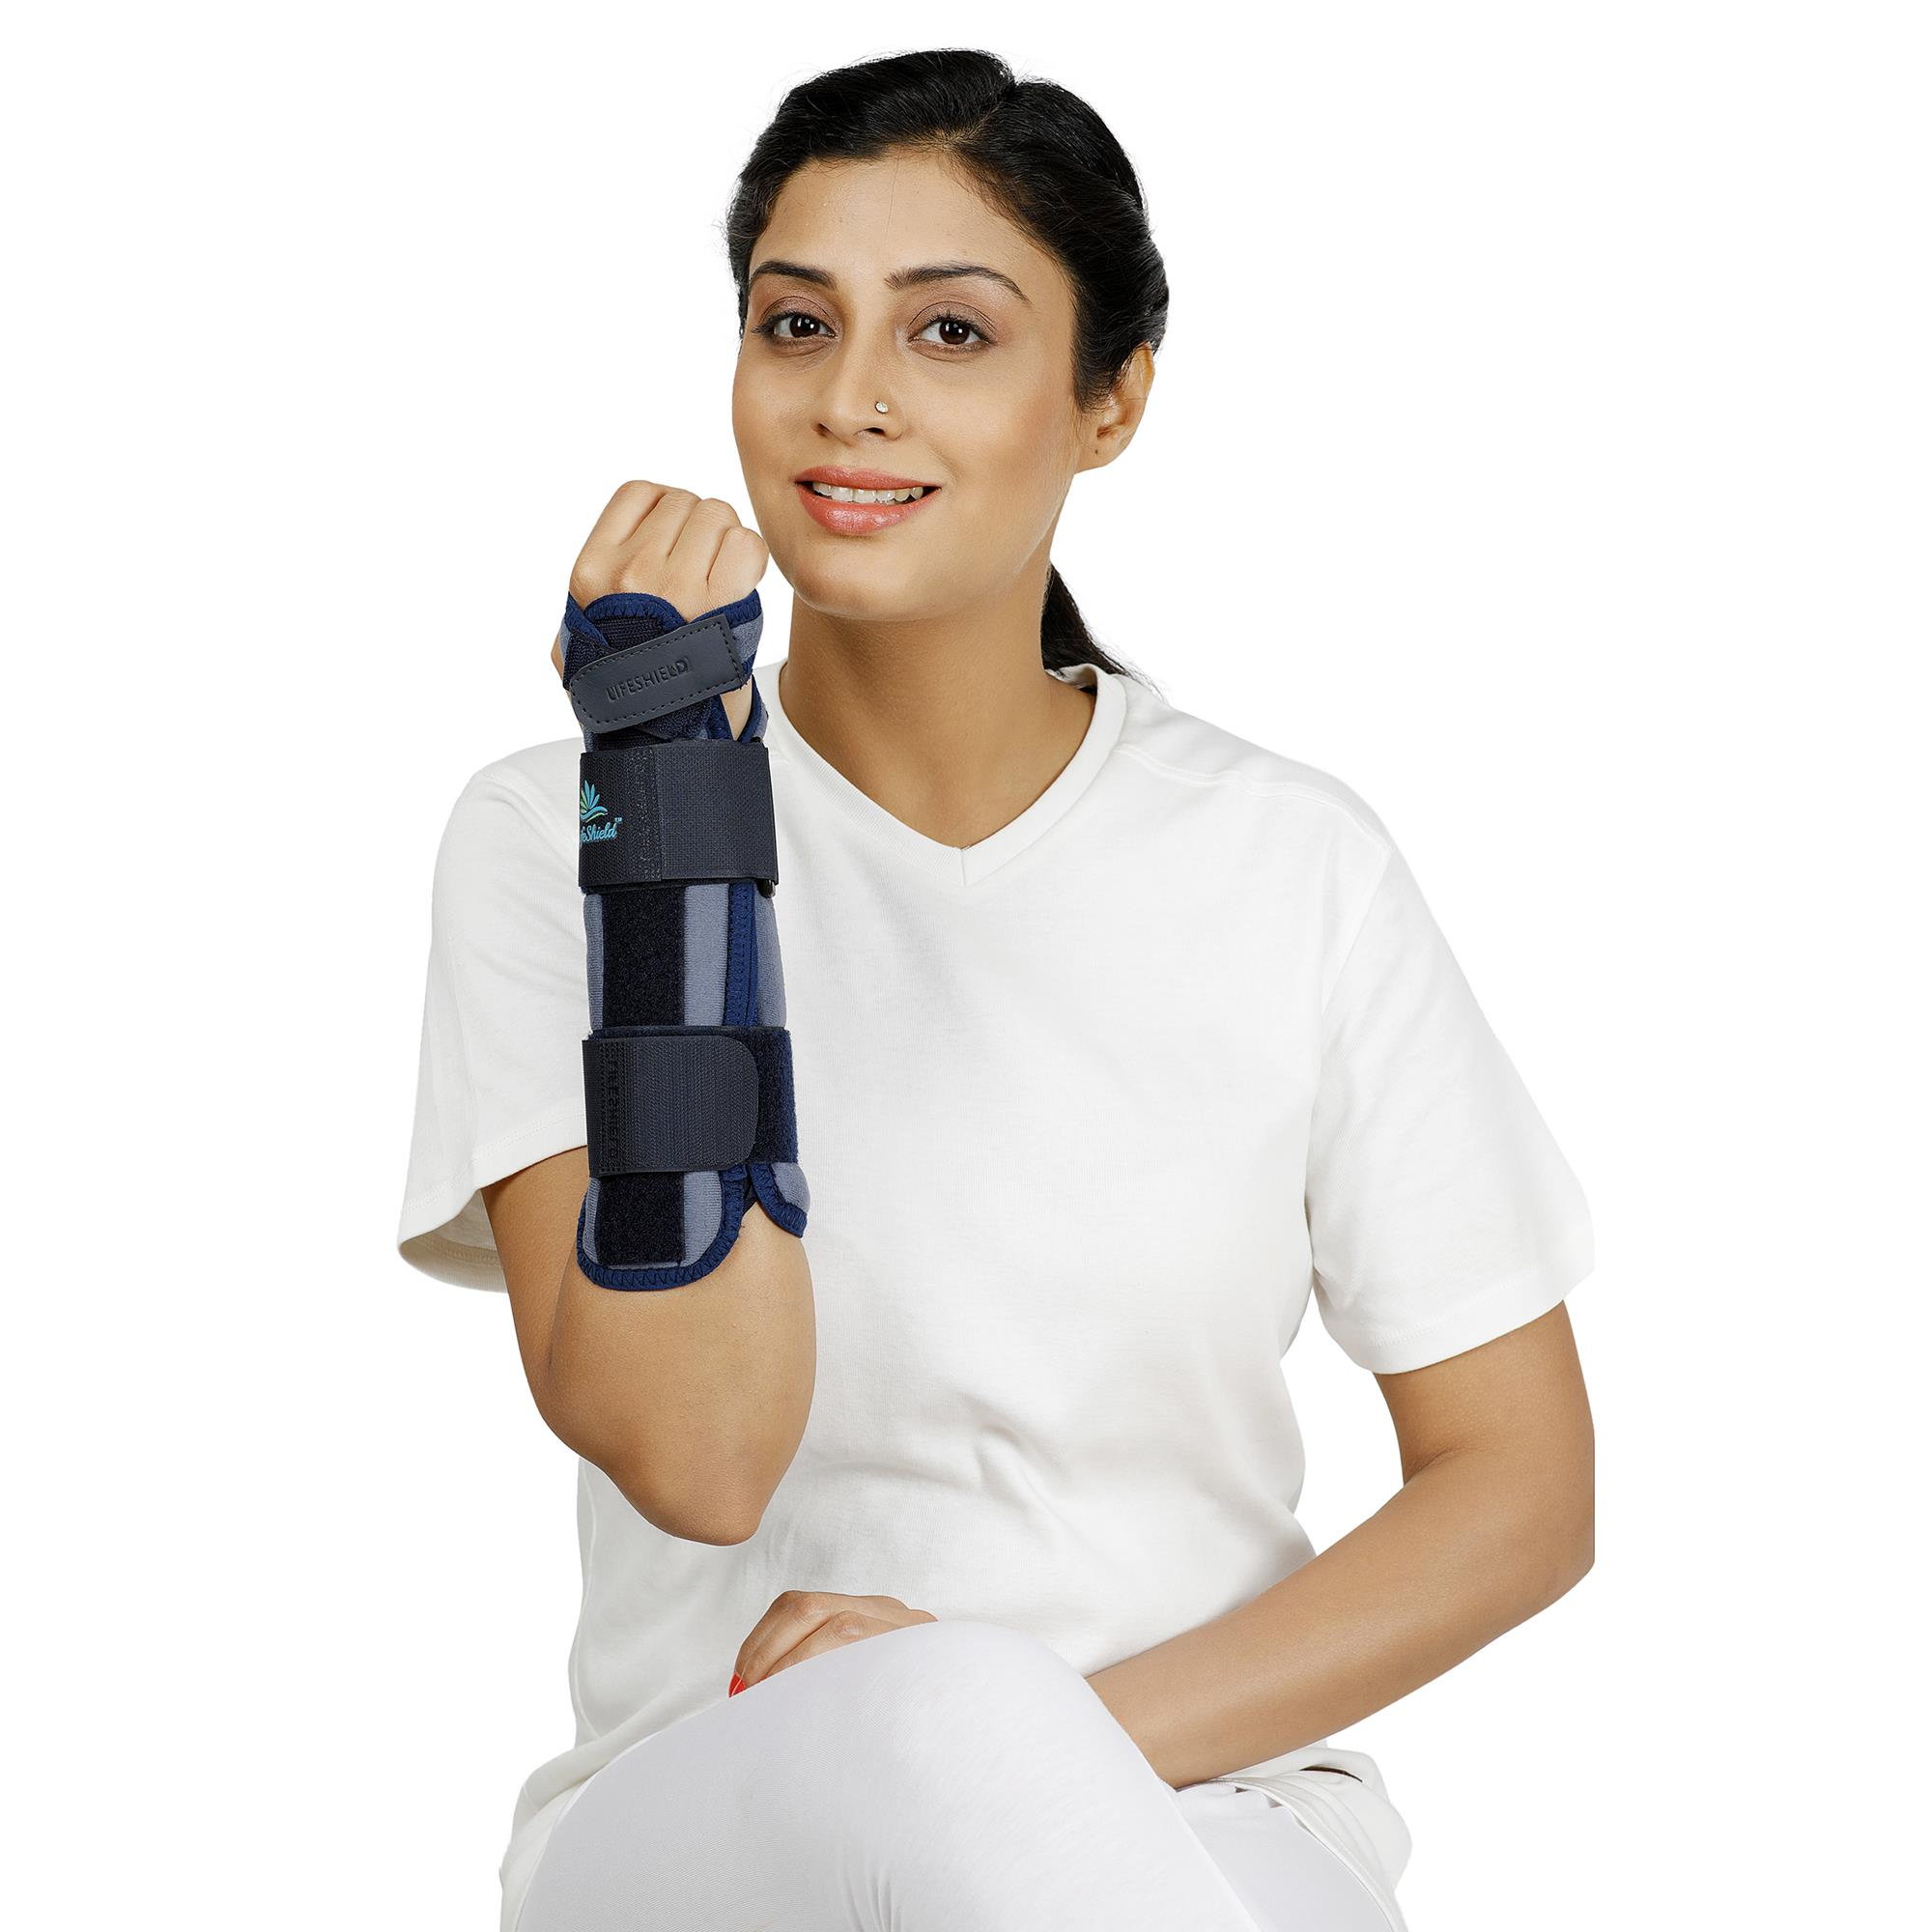 Lifeshield Forearm Splint: For Pain Relief In Forearm Injury, Relaxes Muscles And Supports Forearm With Splints (Universal)